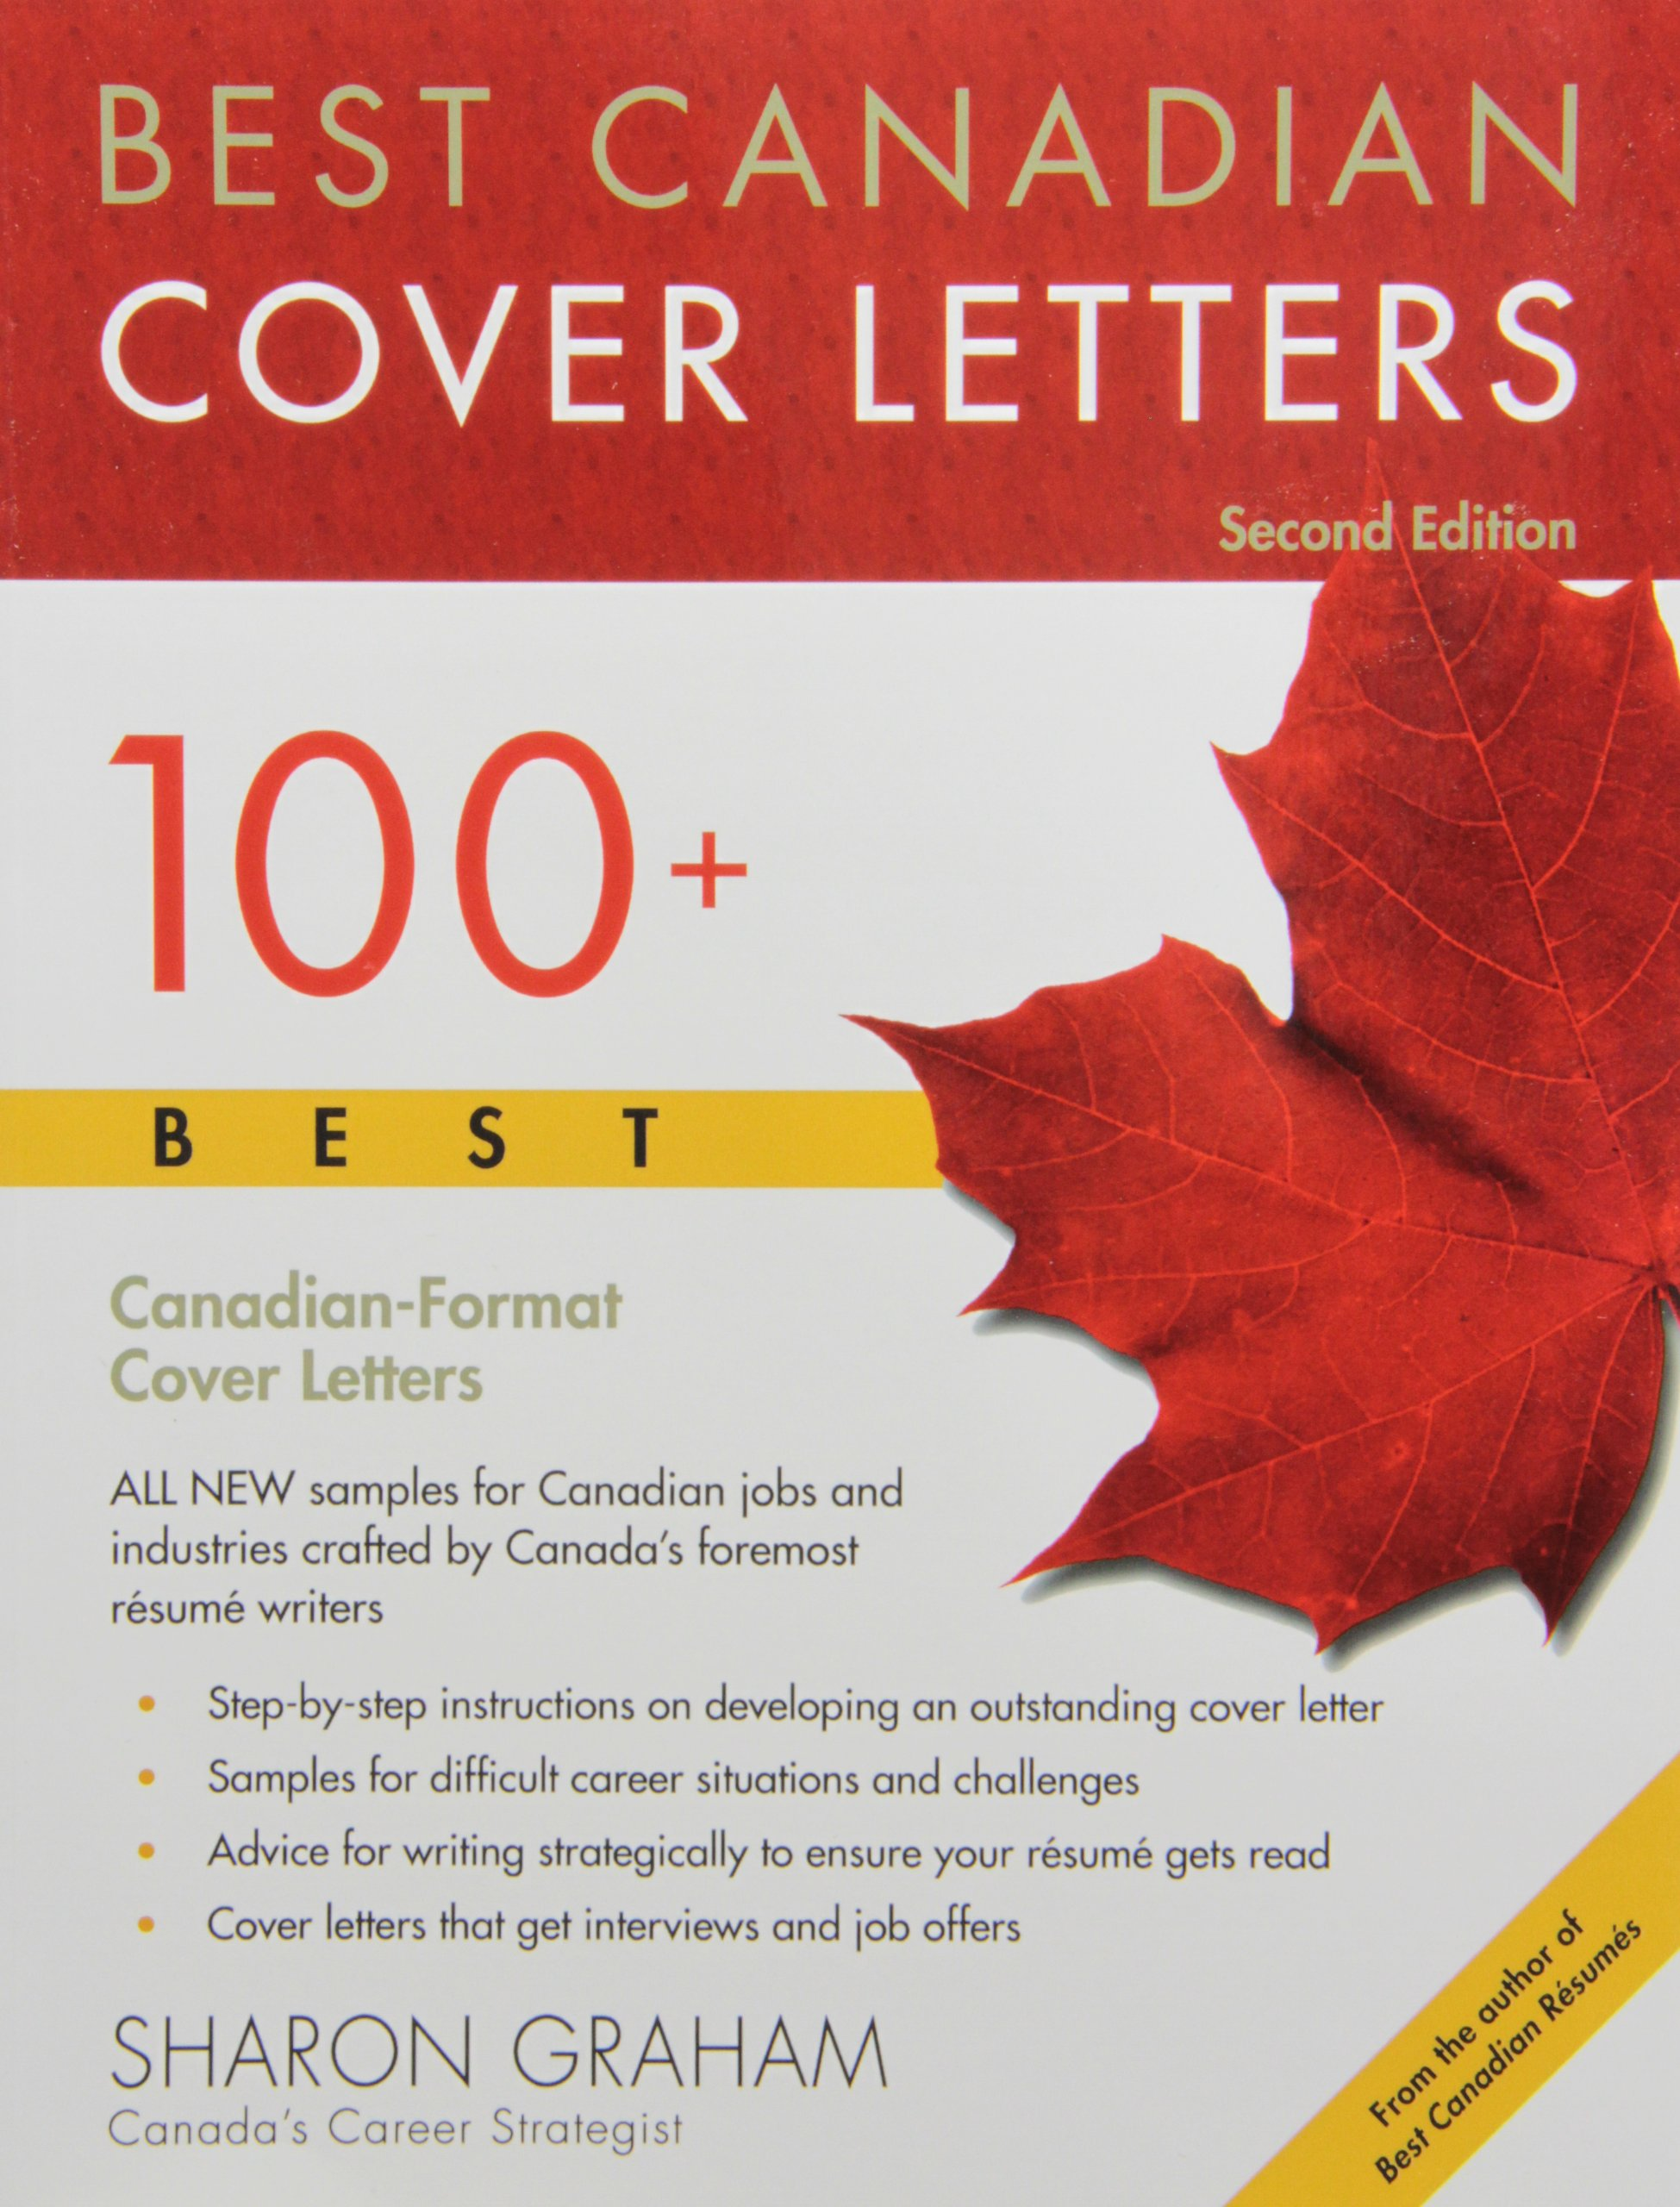 Best Canadian Cover Letters: 100+ Best Canadian-Format Cover ...